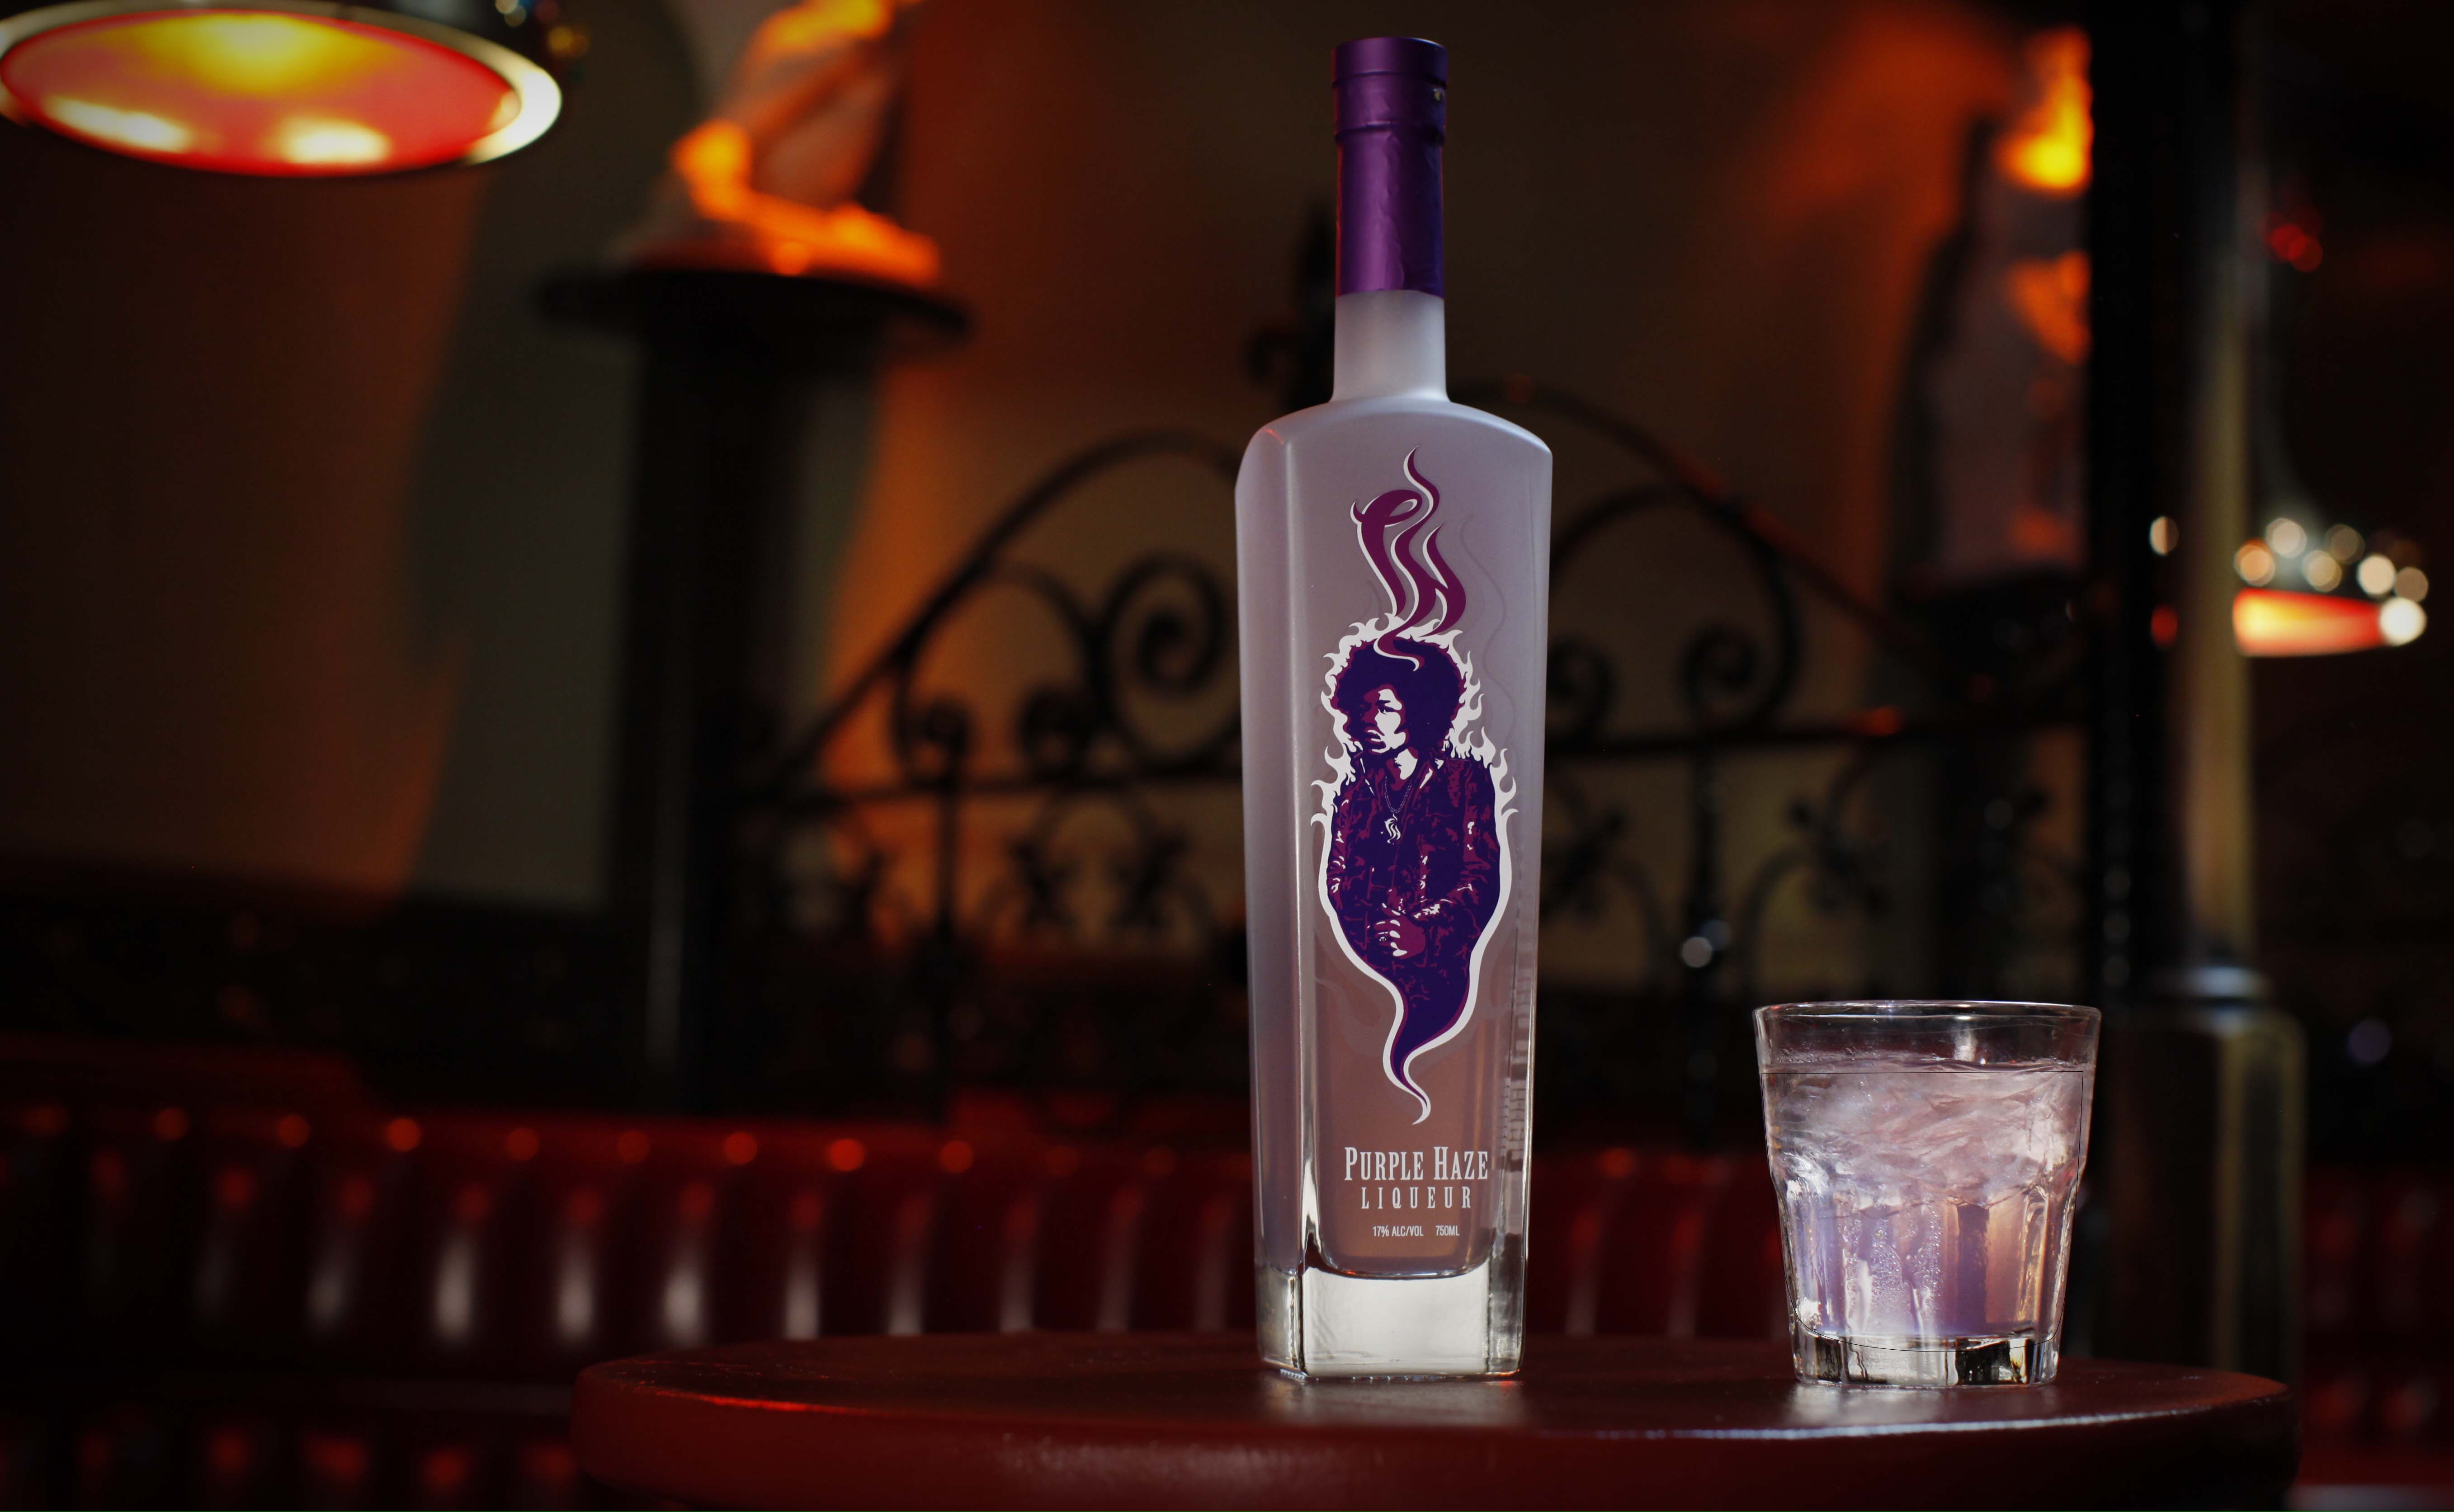 Jimi Hendrix Gets His Own Spirits Brand